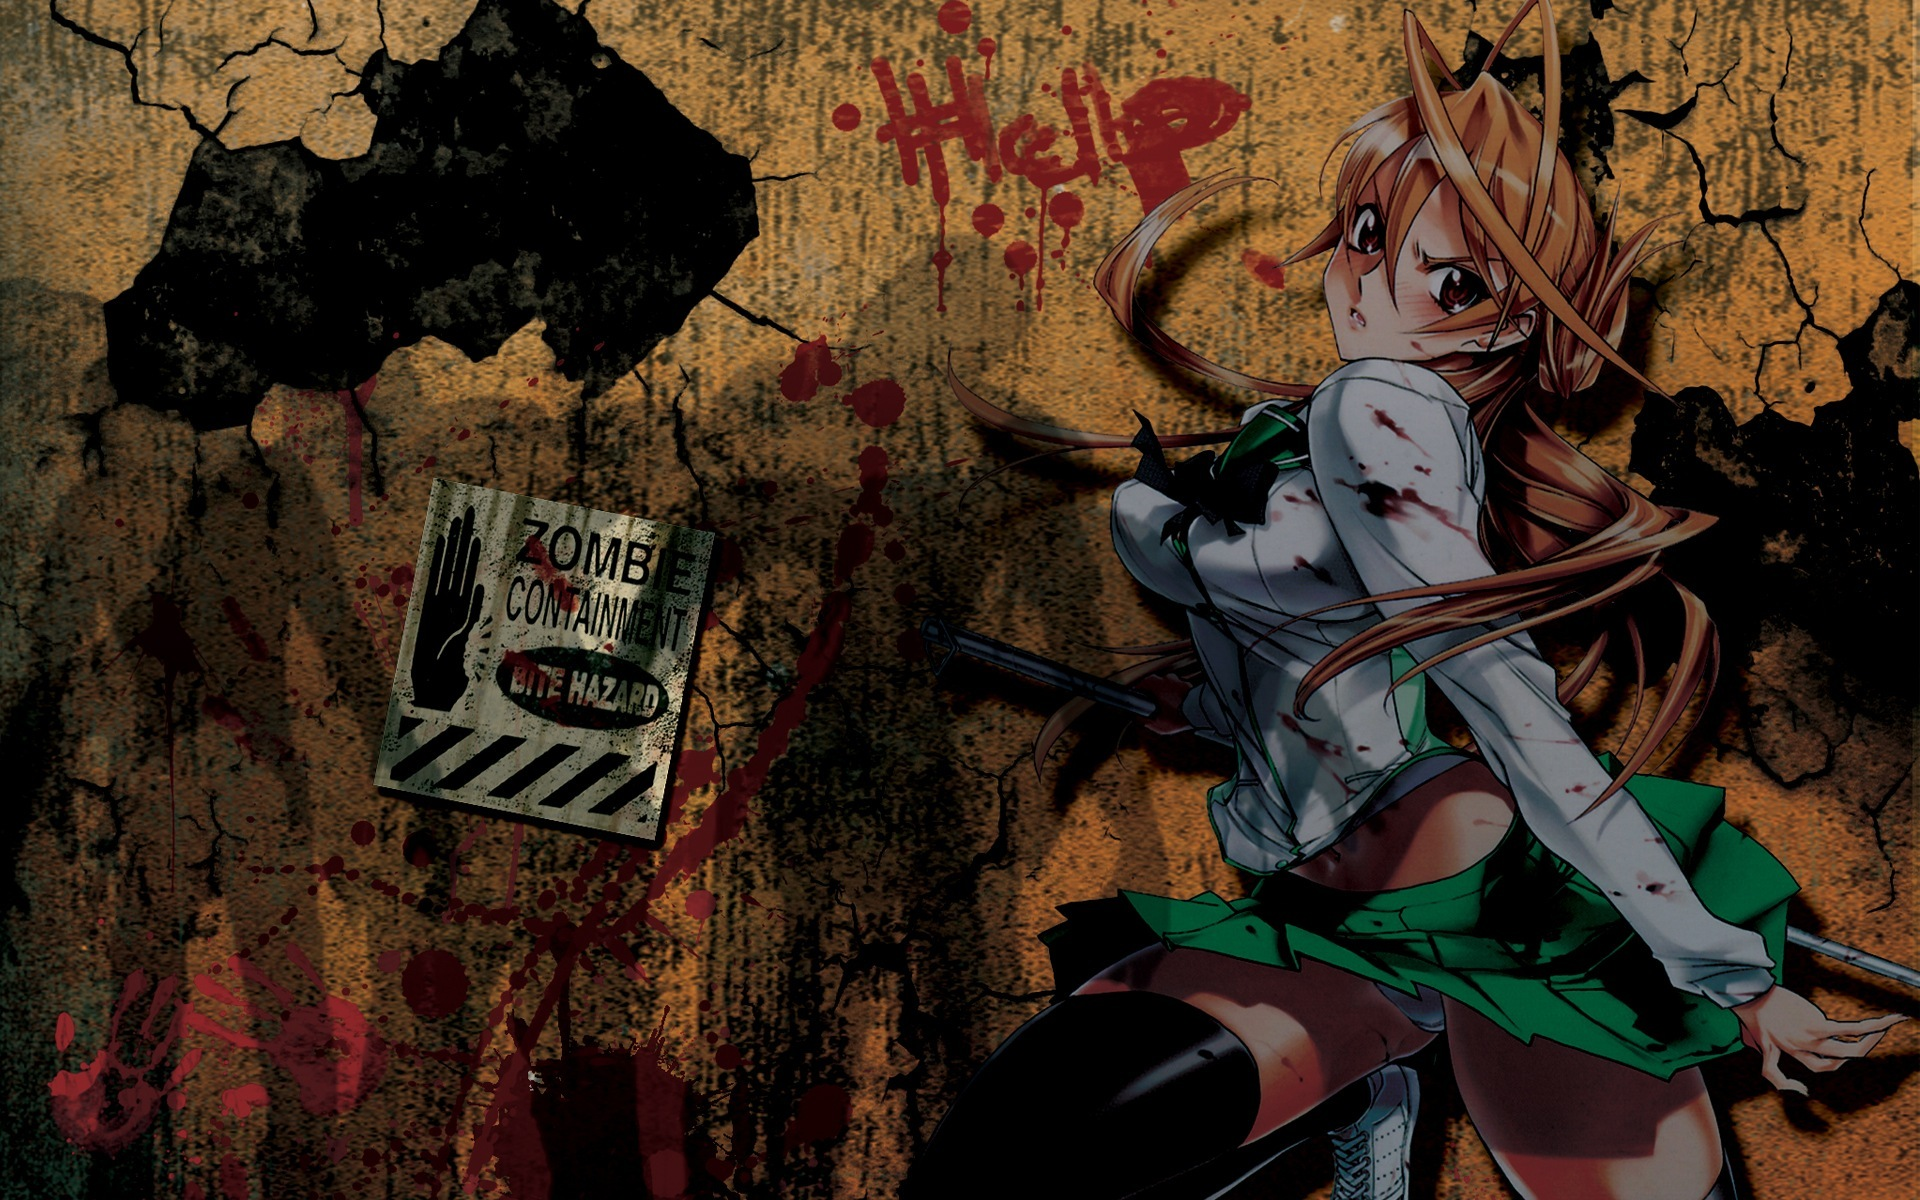 A lovingly curated selection of 90 free hd highschool of the dead wallpapers and background images. HOTD☠ - Highschool of the Dead Wallpaper (35580935) - Fanpop